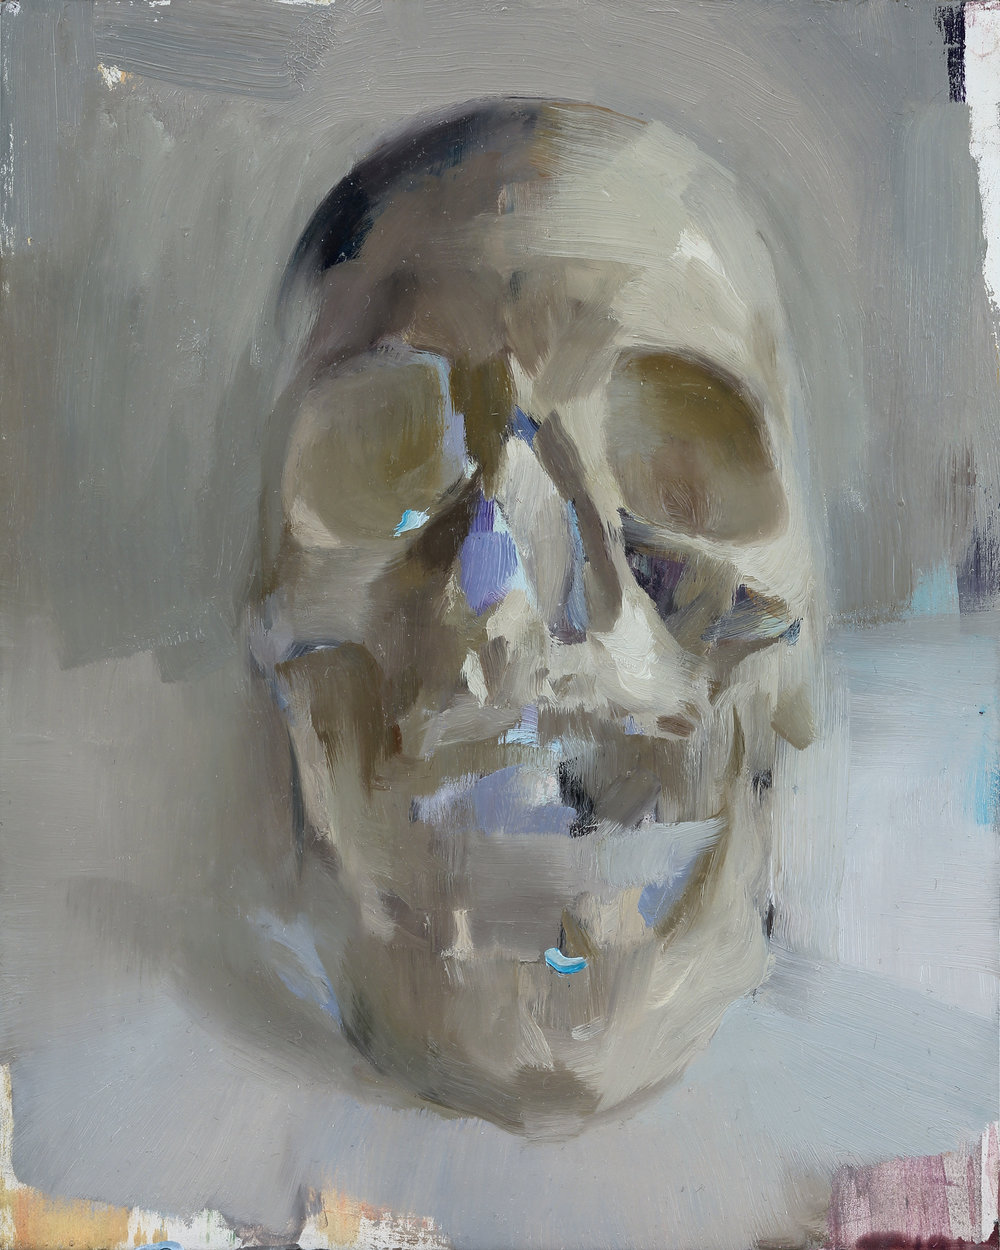 Skull 10 X 8 inches oil on panel unframed SOLD